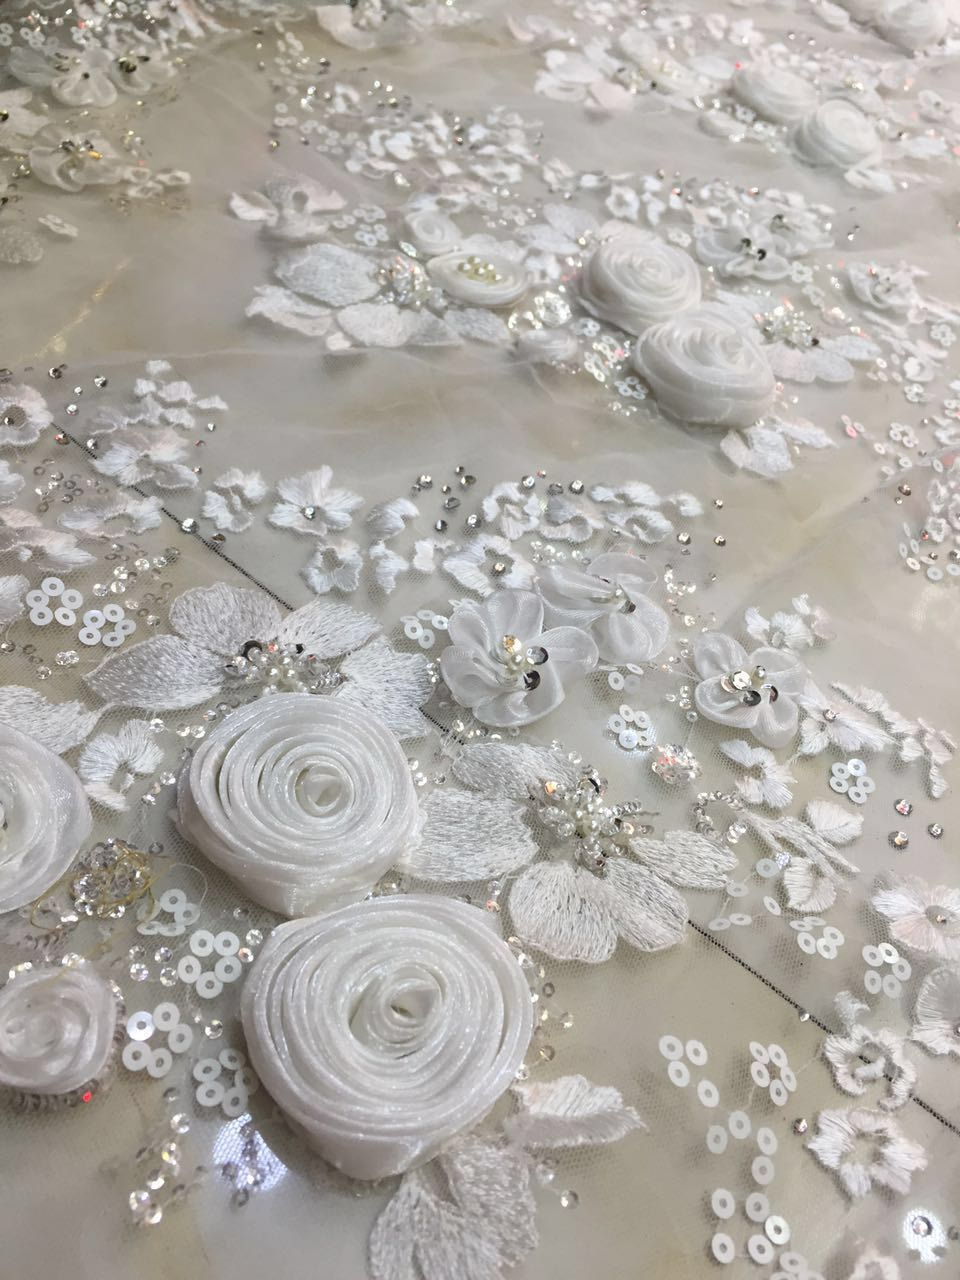 Wedding accessories pearls flowers pearls - Fashion Style 3d Rose Handmade Flowers Stones Pearls Wedding Show Evening Dress Lace Fabric